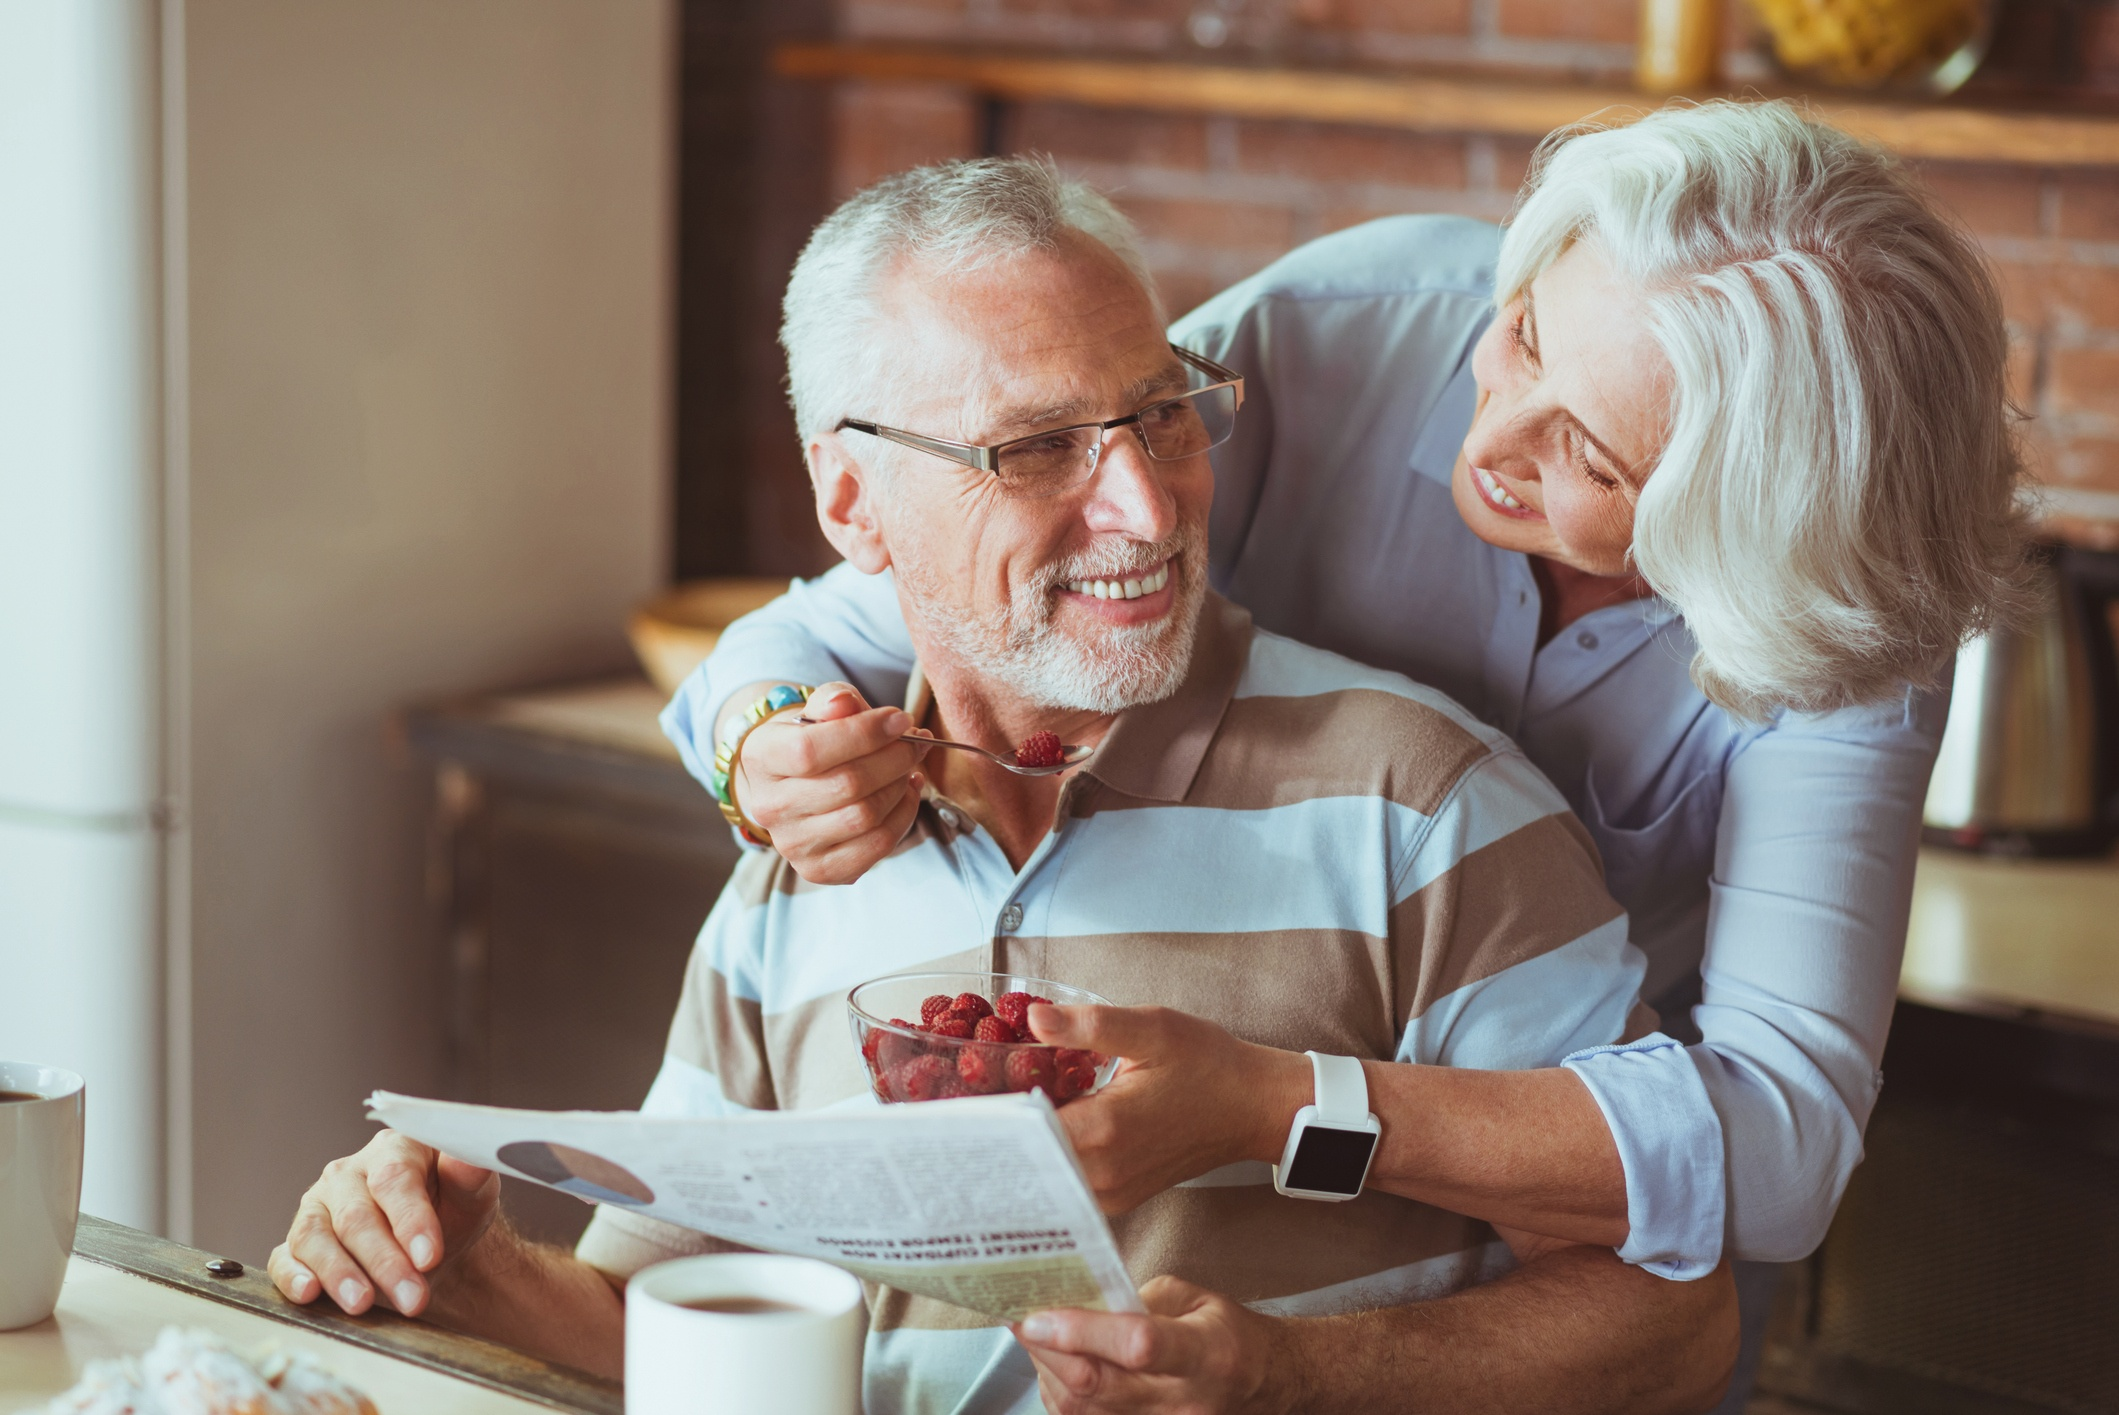 Ready for Reverse? 5 Tips for Marketing to Seniors